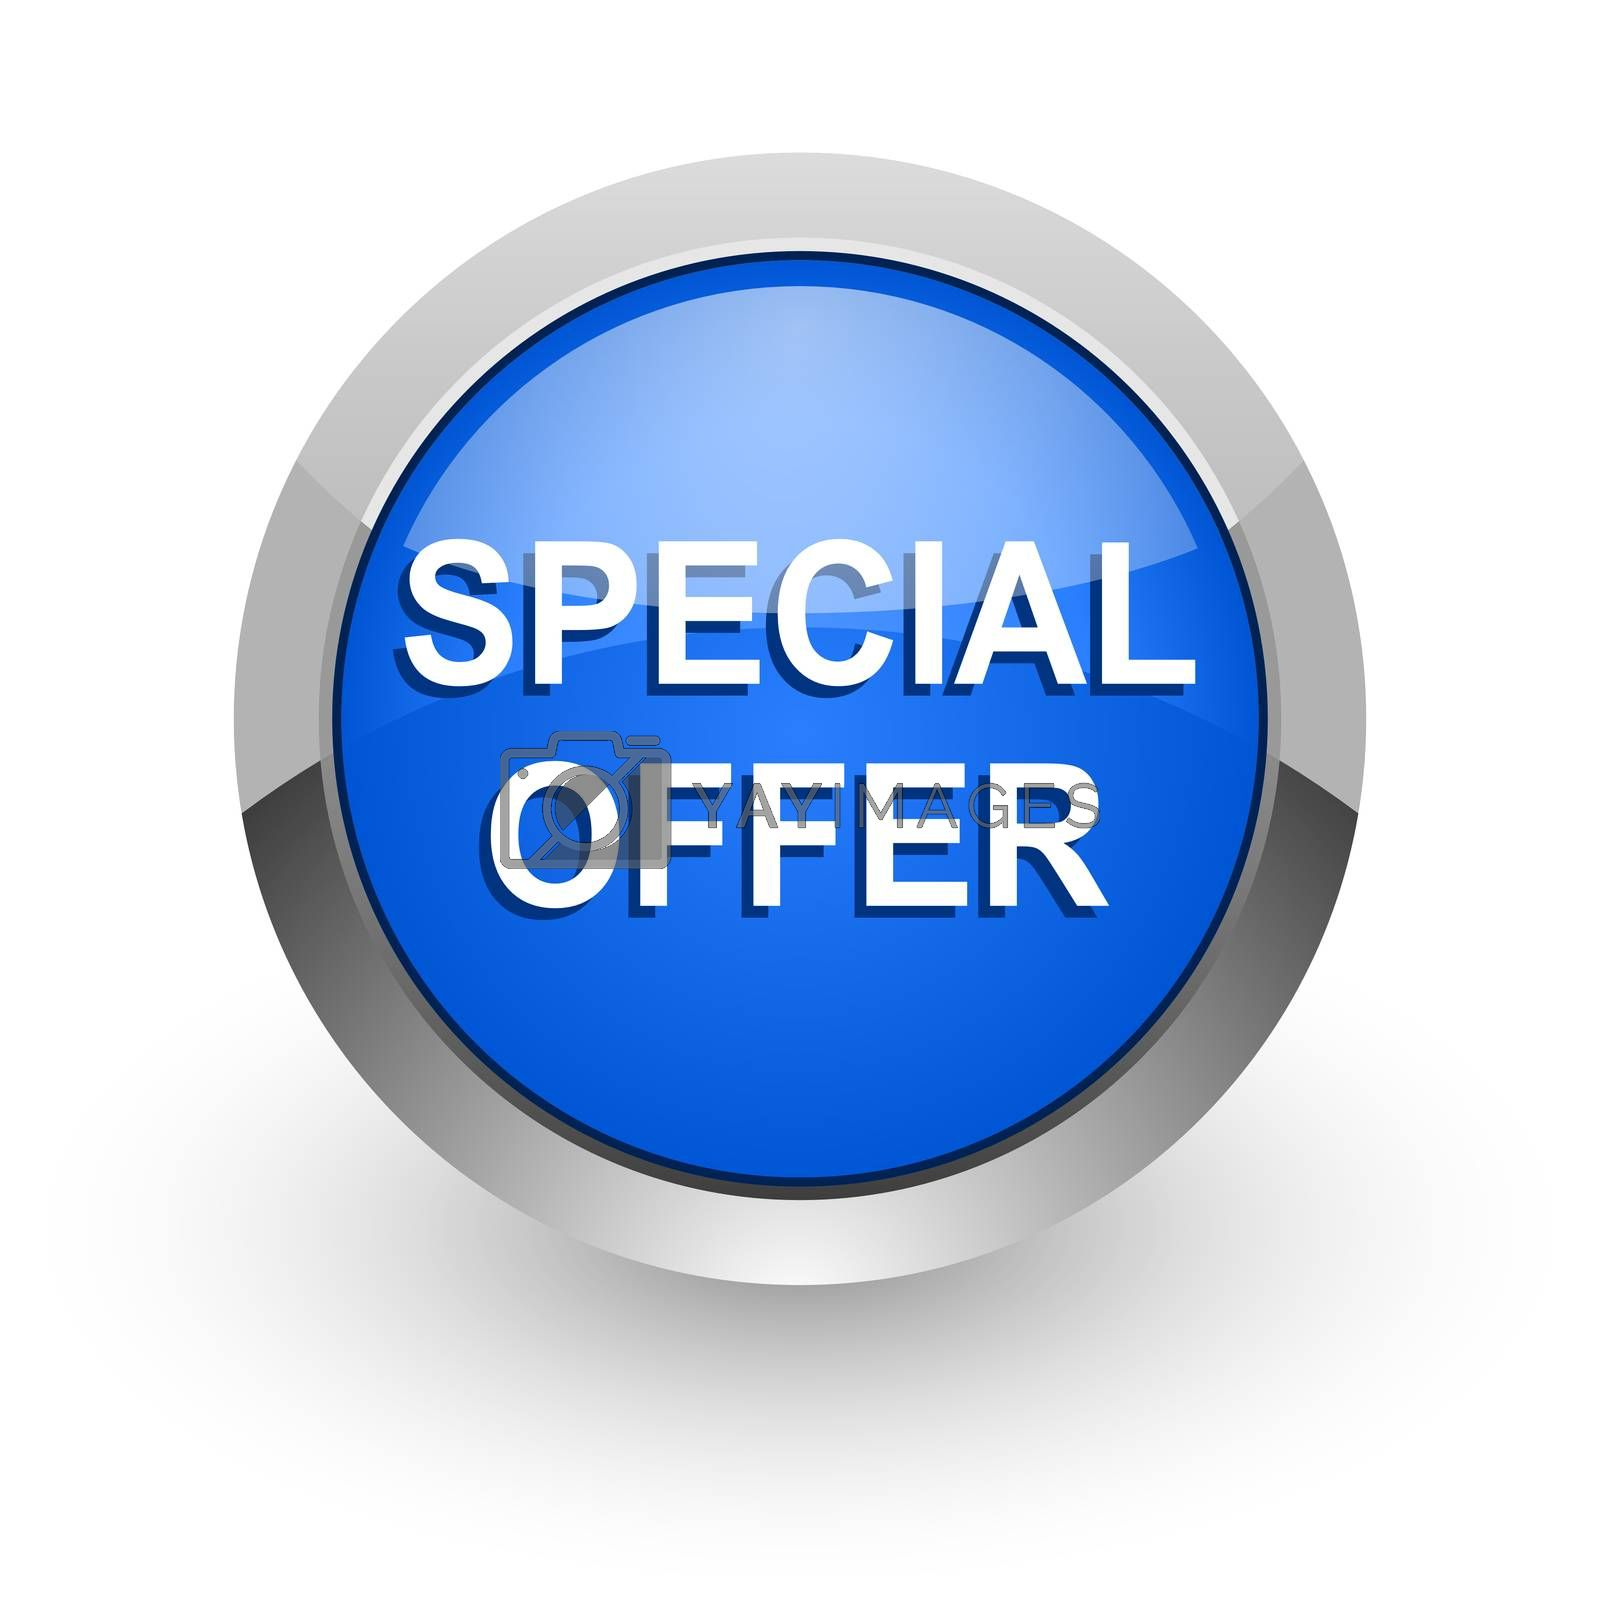 Royalty free image of special offer blue glossy web icon by alexwhite